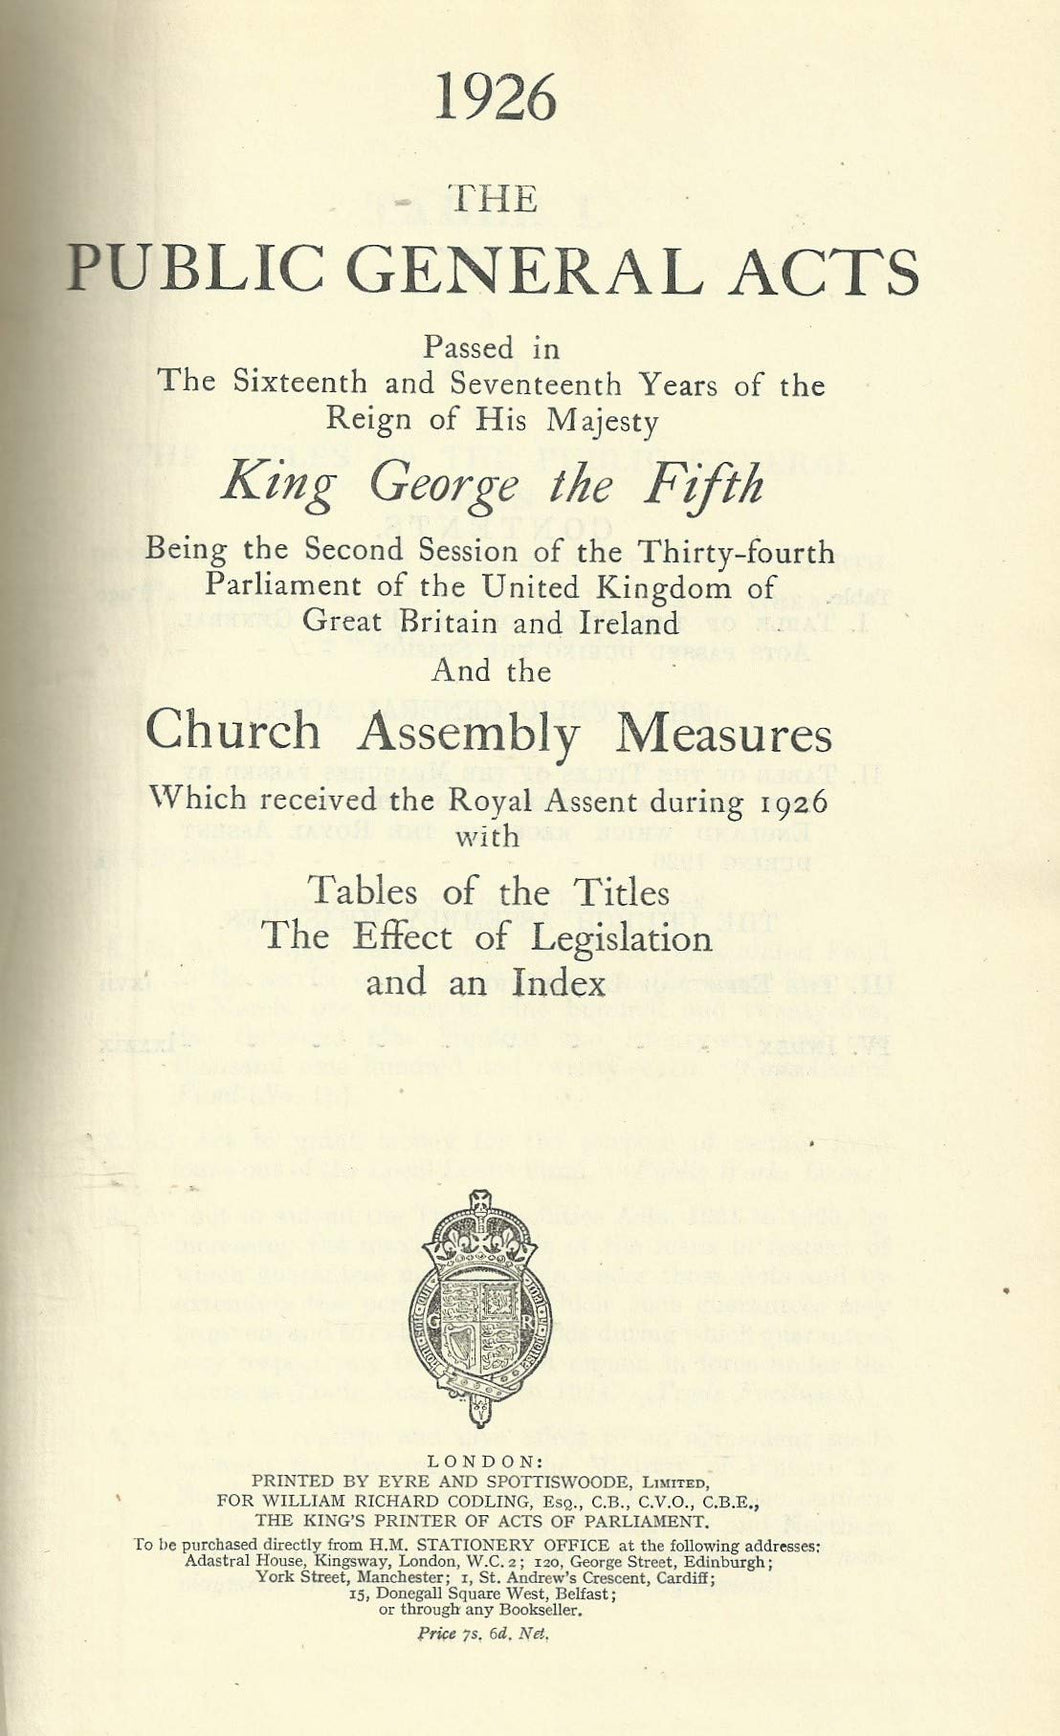 The Public General Acts and the Church Assembly Measures of 1926